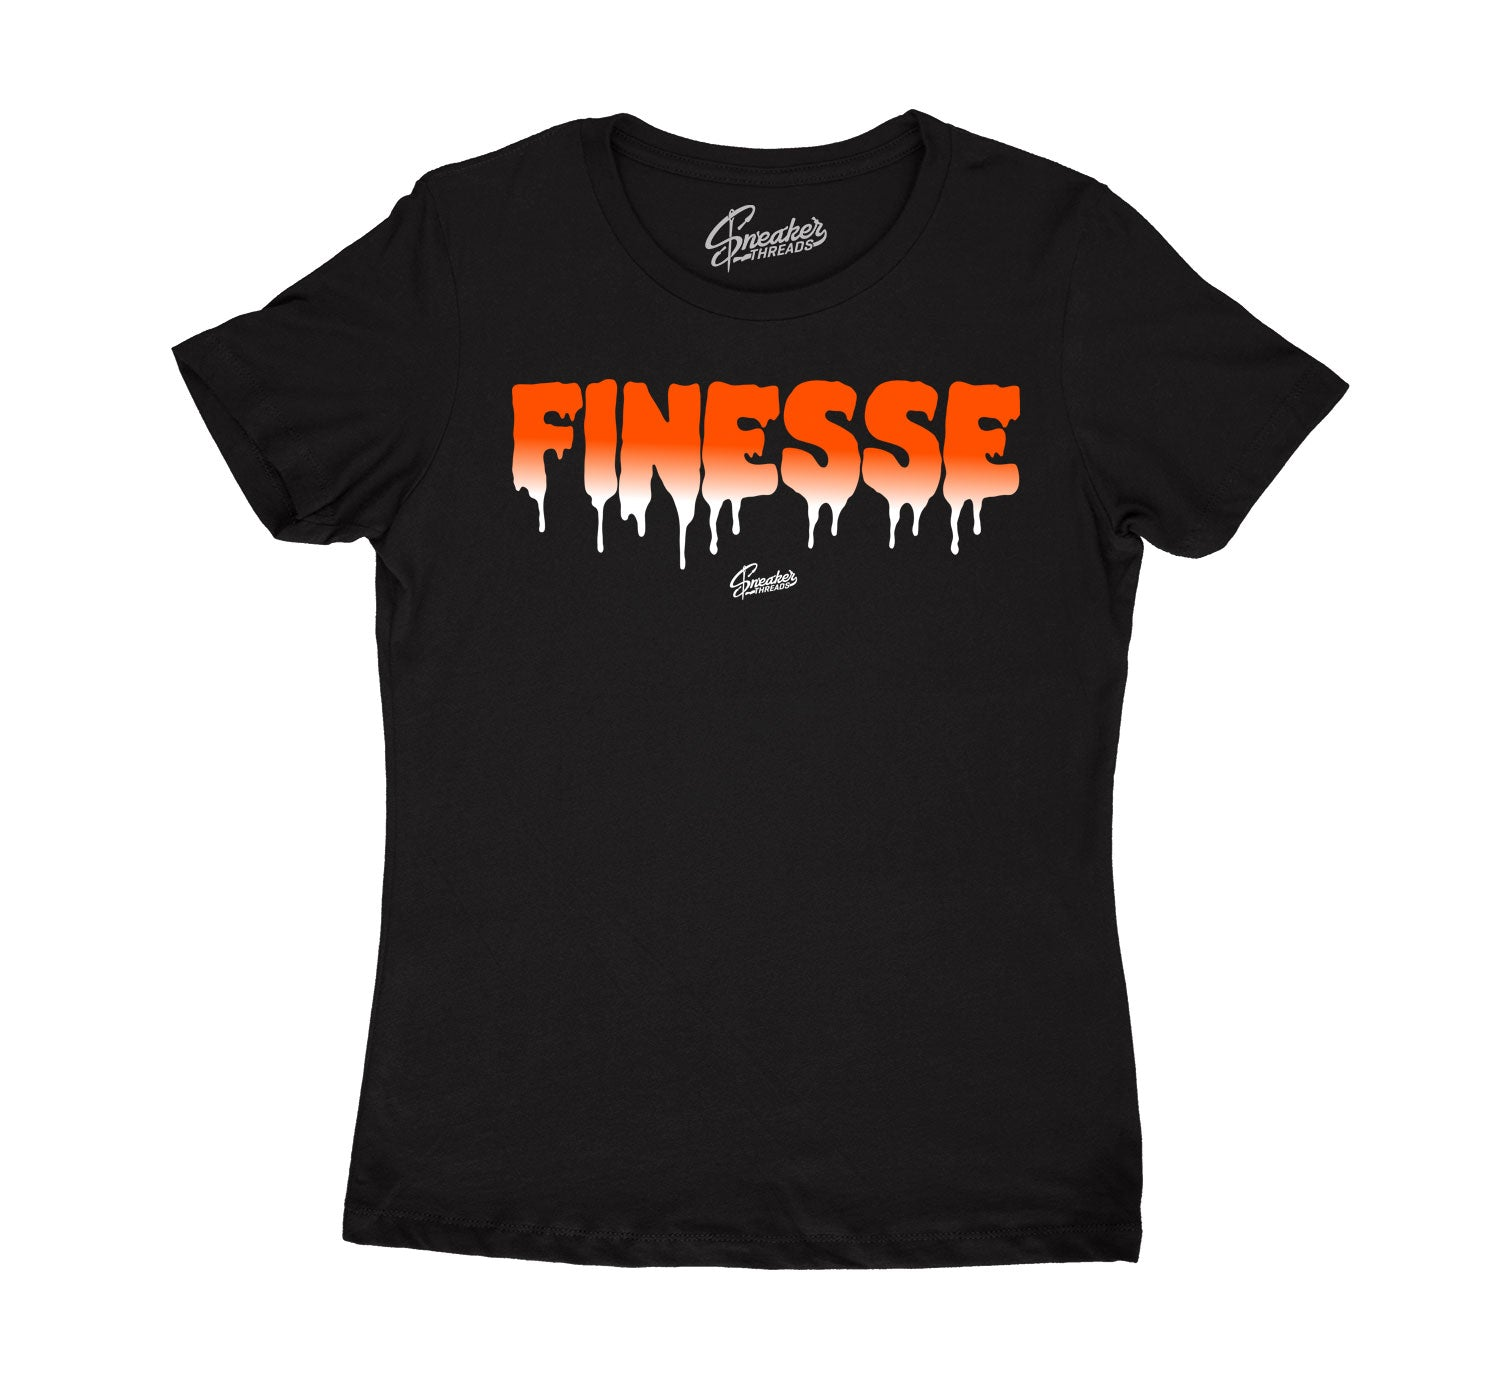 Womens Starfish Shirt - Finesse - Black